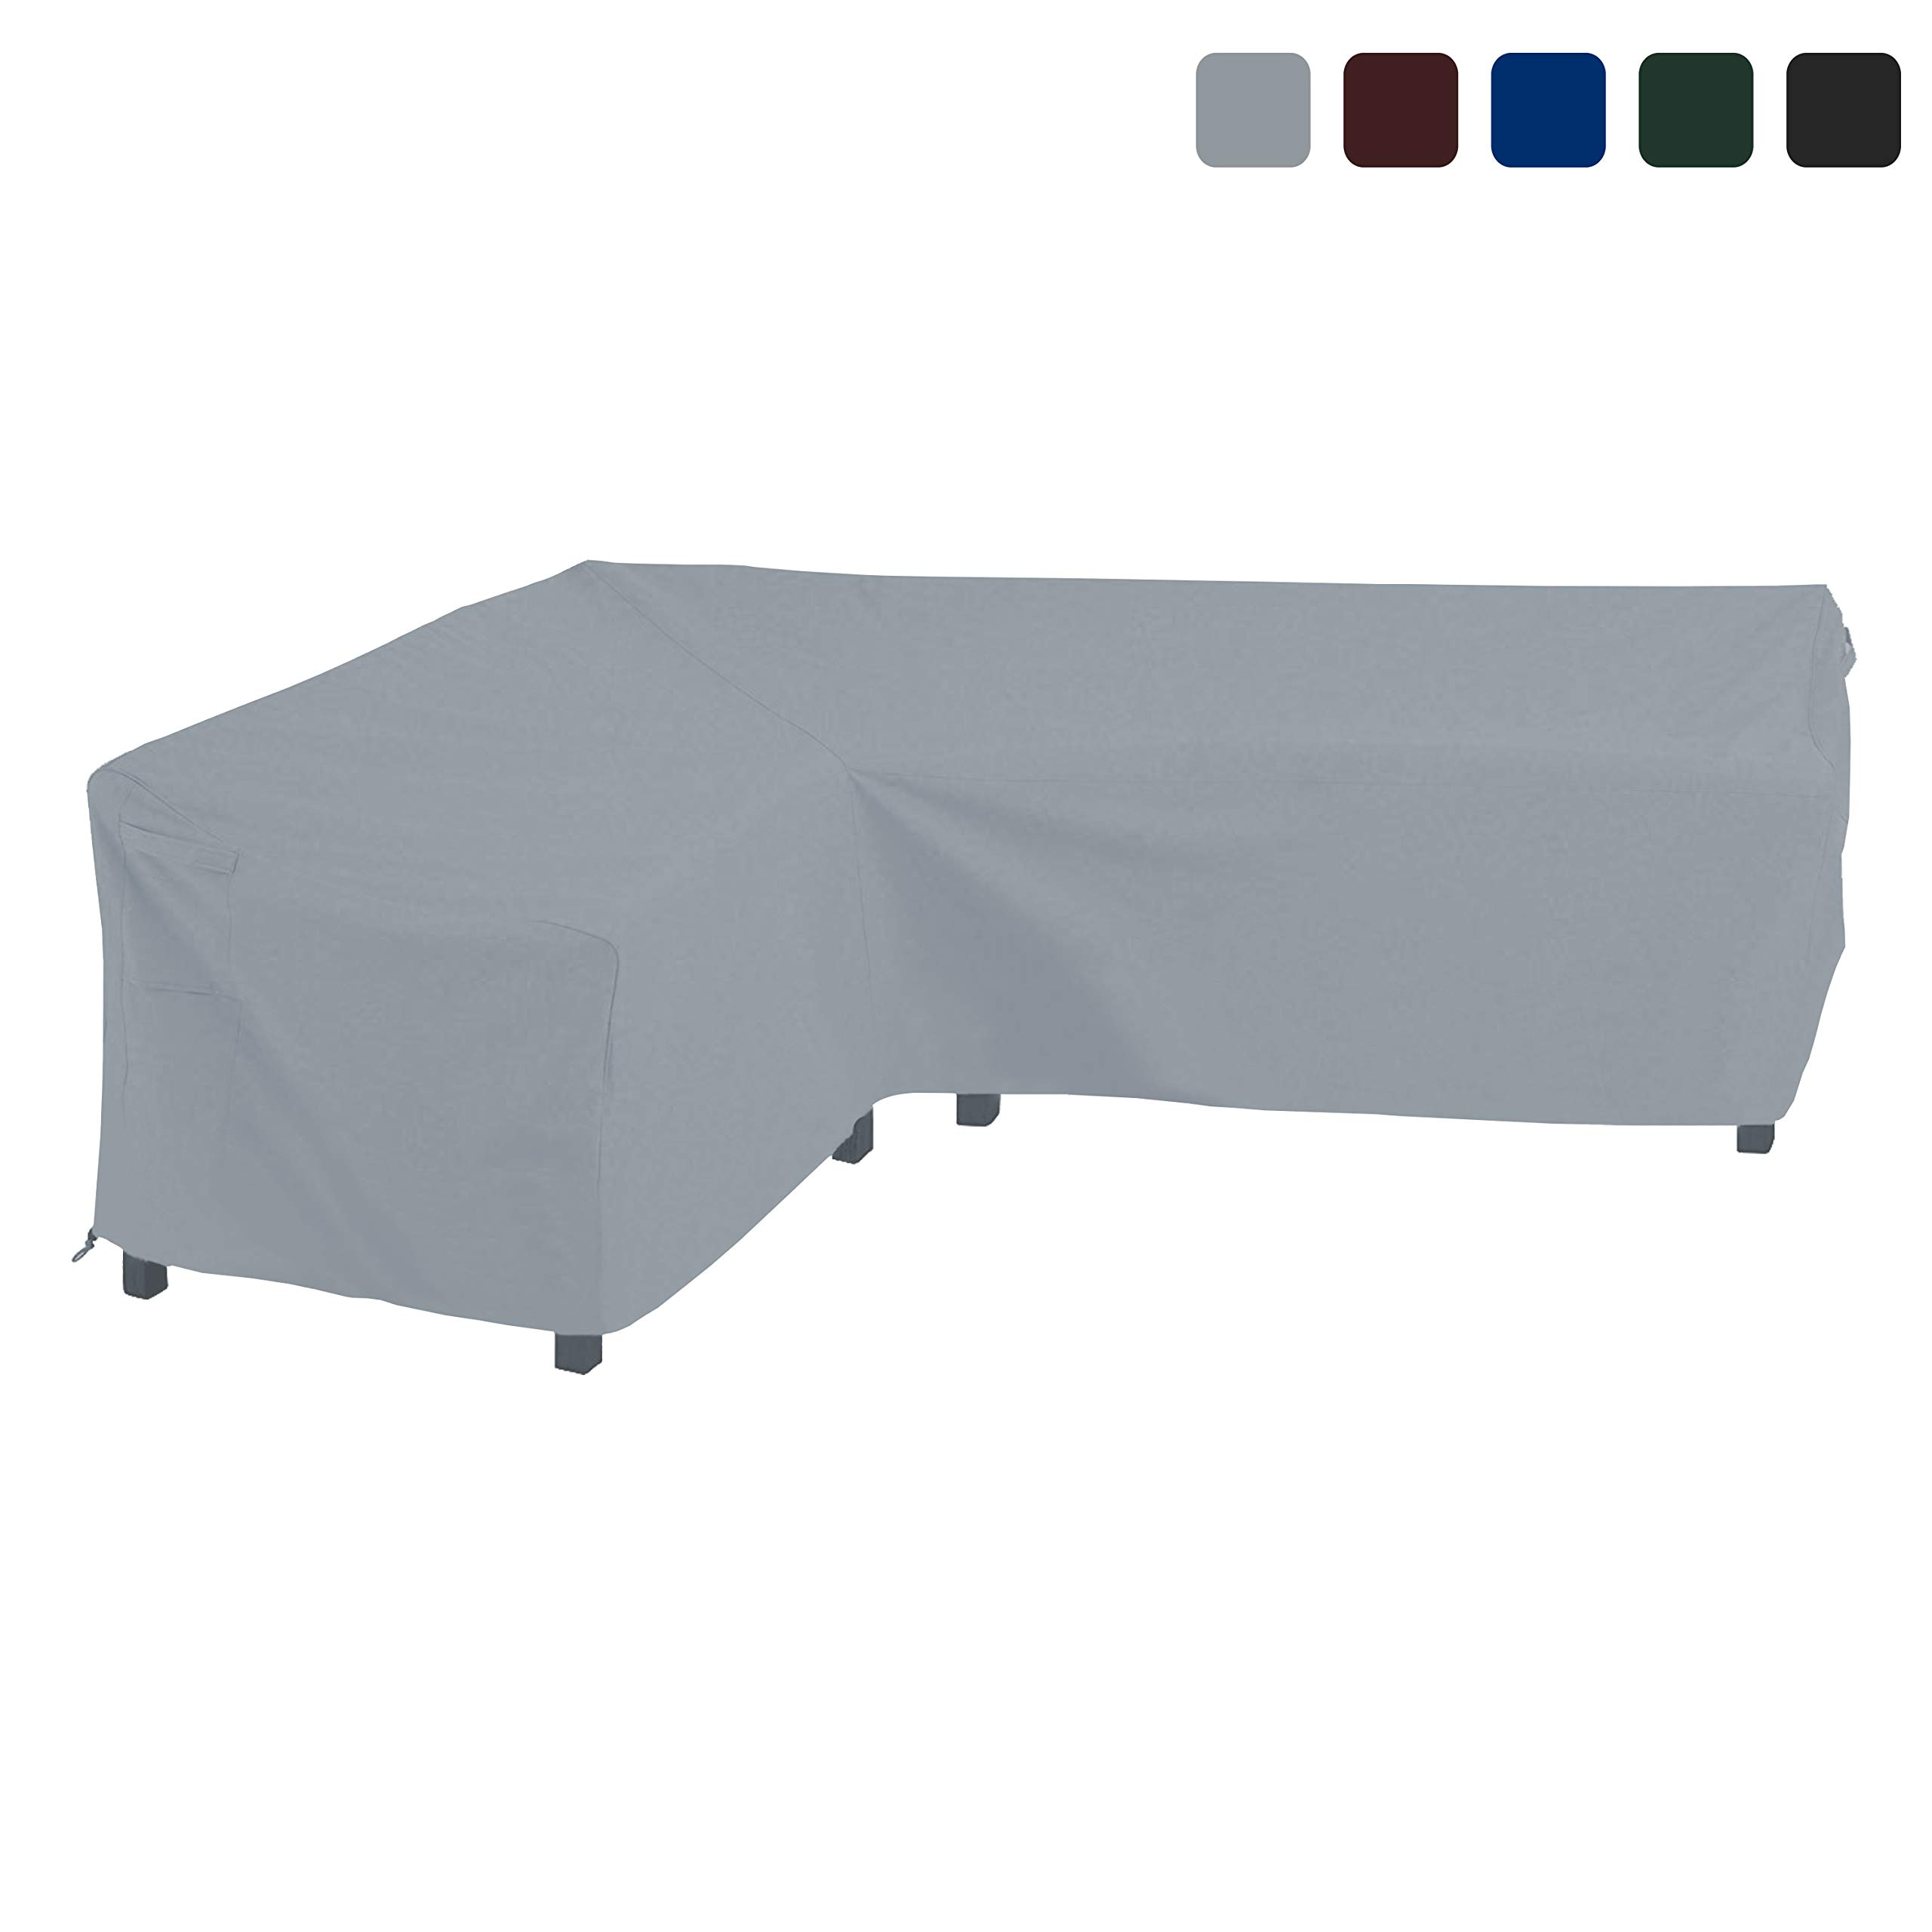 COVERS & ALL Patio Sectional Sofa Cover 18 Oz Waterproof - 100% UV & Weather Resistant PVC Coated 90'' x 120'' x 33''D x 35'' H - L Shape Sofa Cover for Indoor/Outdoor (Left Facing Sofa, Grey)